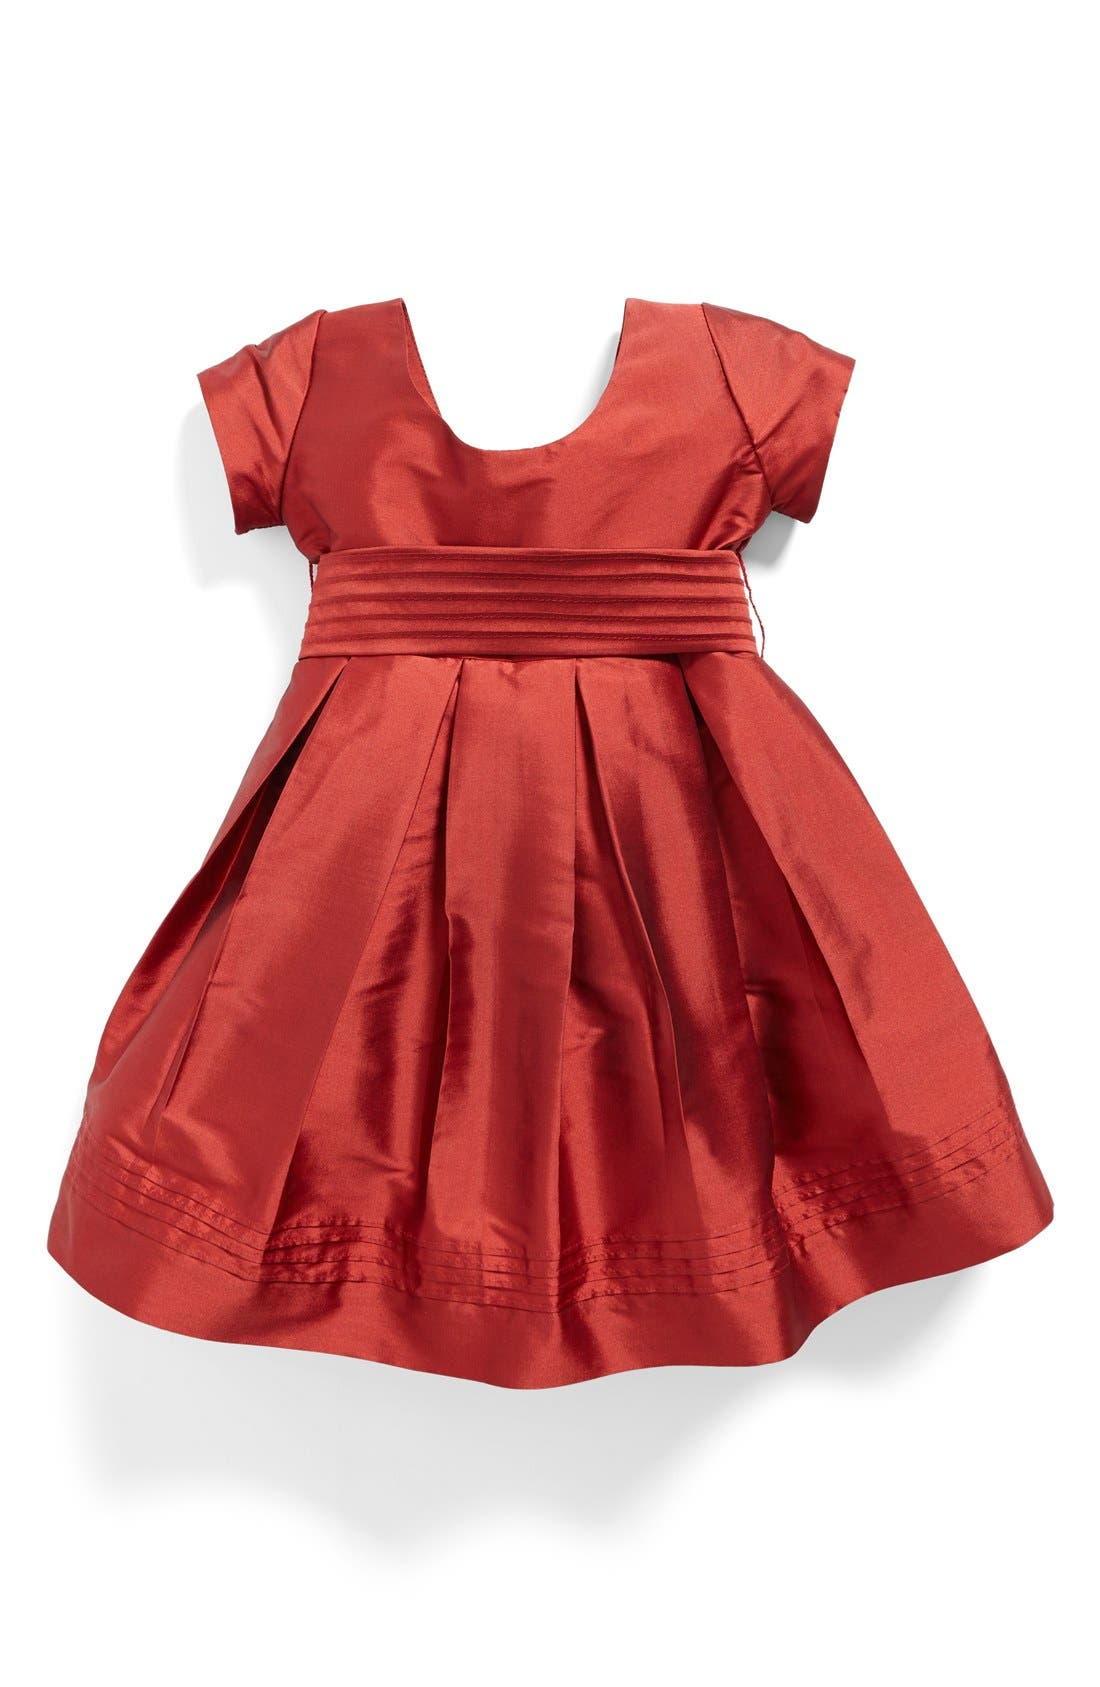 Alternate Image 1 Selected - Isabel Garreton Cap Sleeve Taffeta Dress (Toddler Girls, Little Girls & Big Girls)